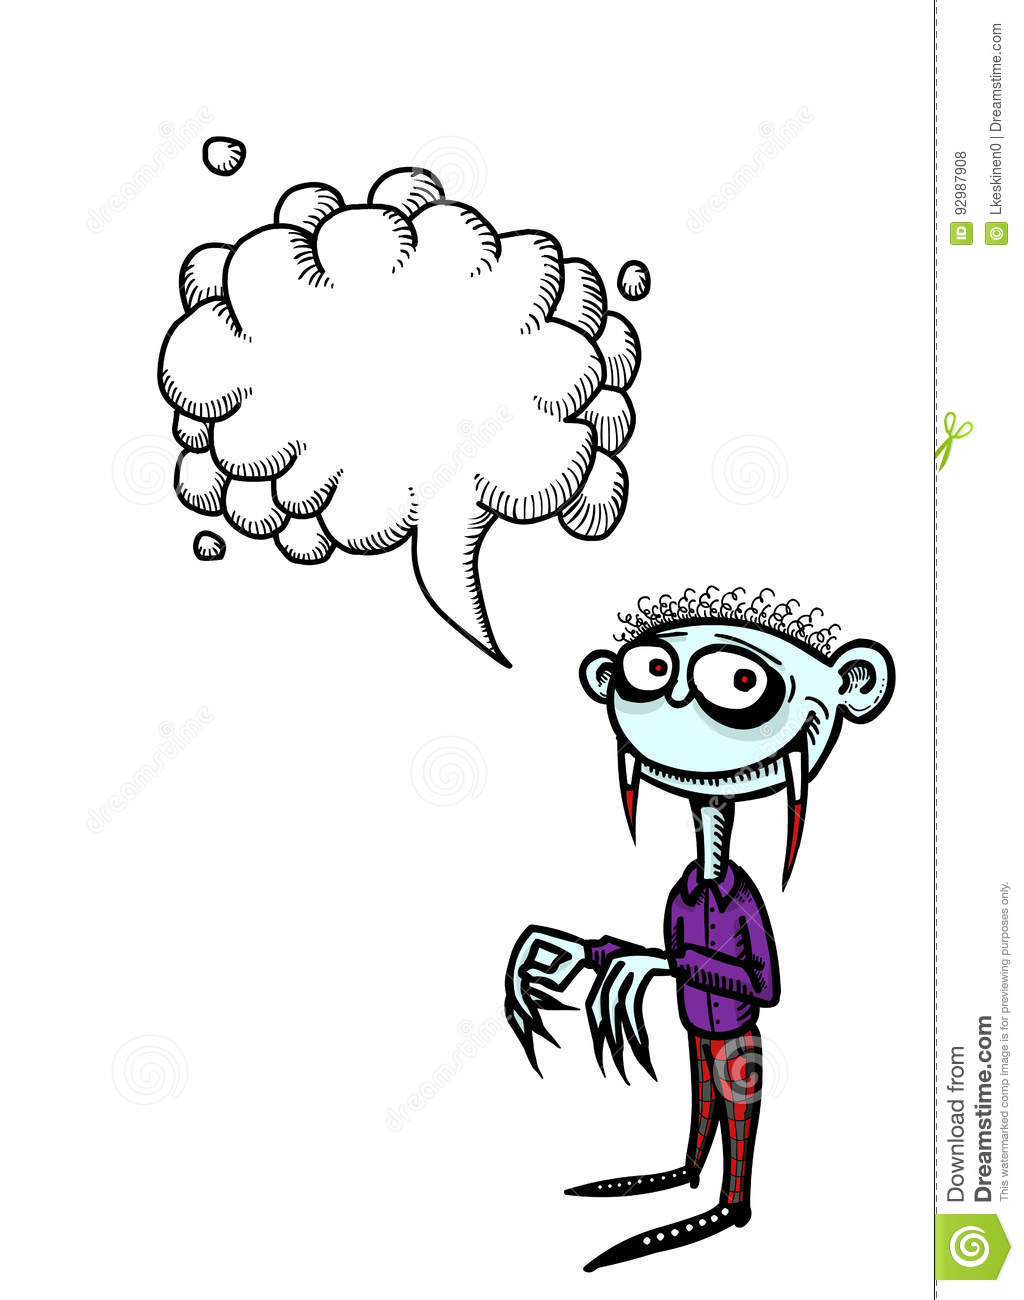 Tadpole Cartoons Illustrations Amp Vector Stock Images